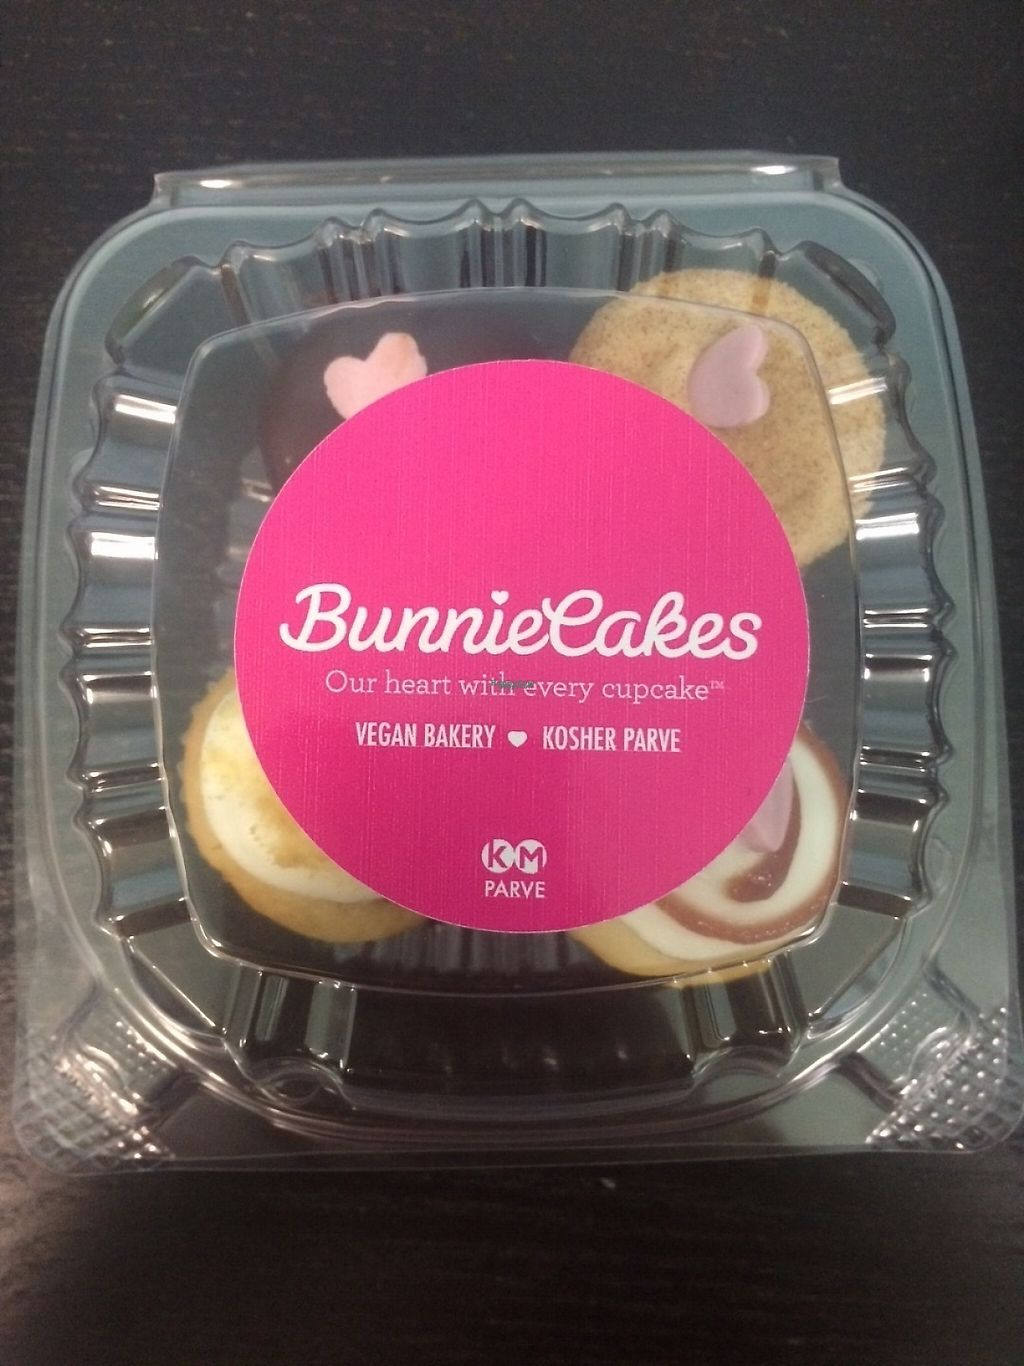 "Photo of Bunnie Cakes  by <a href=""/members/profile/alexriyan"">alexriyan</a> <br/>ALL VEGAN!! <br/> February 10, 2017  - <a href='/contact/abuse/image/40652/225006'>Report</a>"